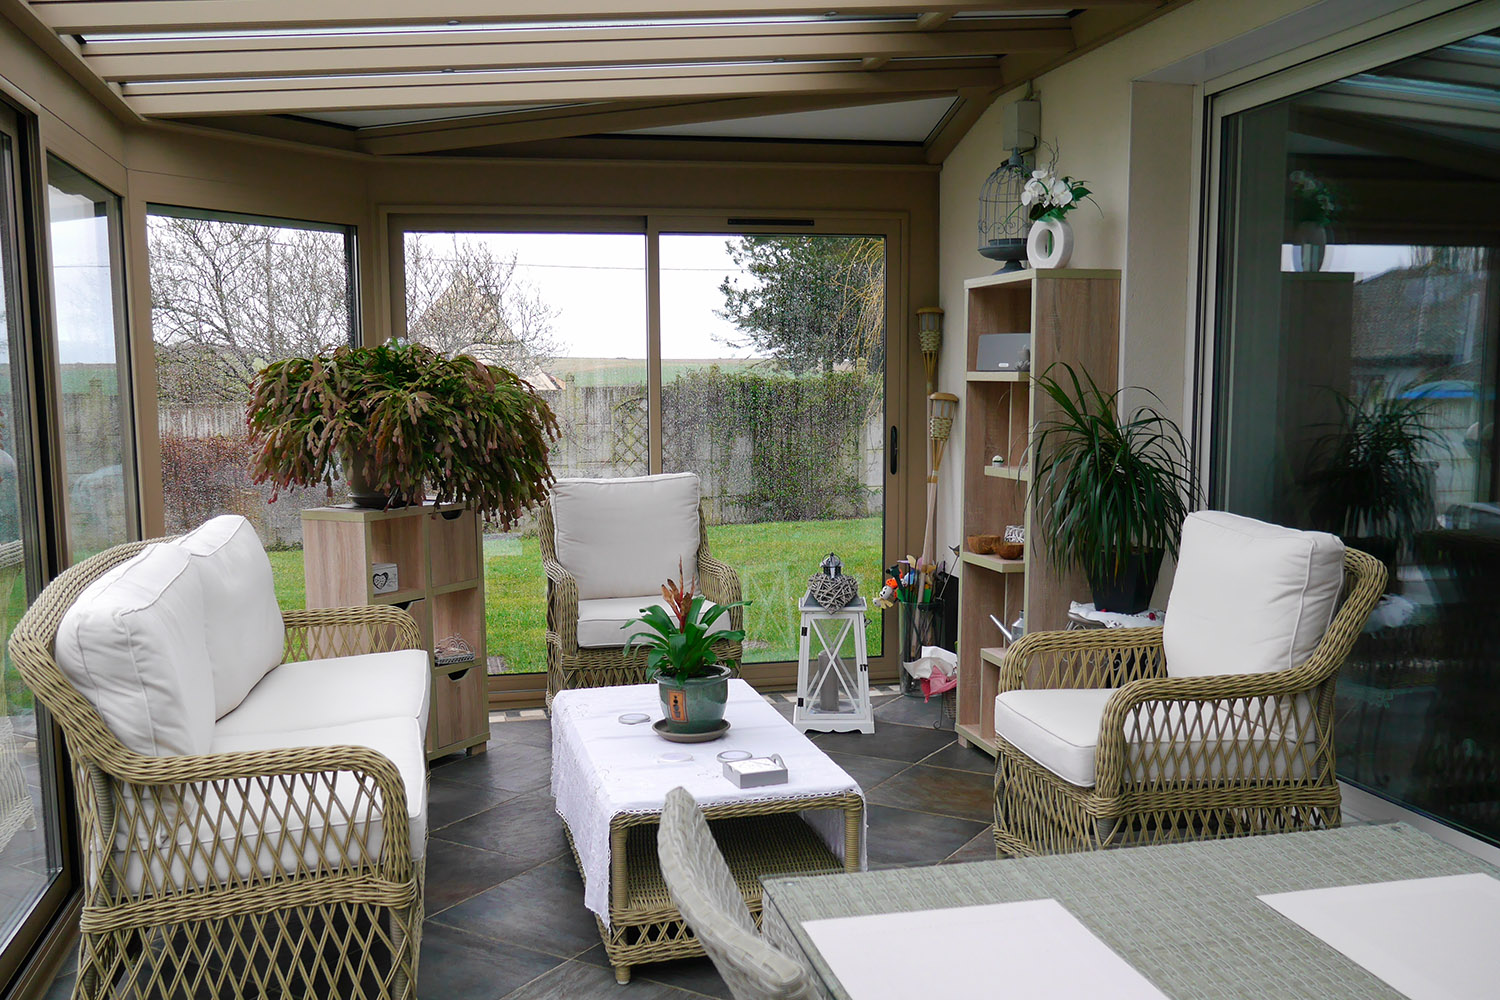 Emejing salon de jardin en rotin pour veranda ideas awesome interior home satellite - Salon en rotin pour veranda ...